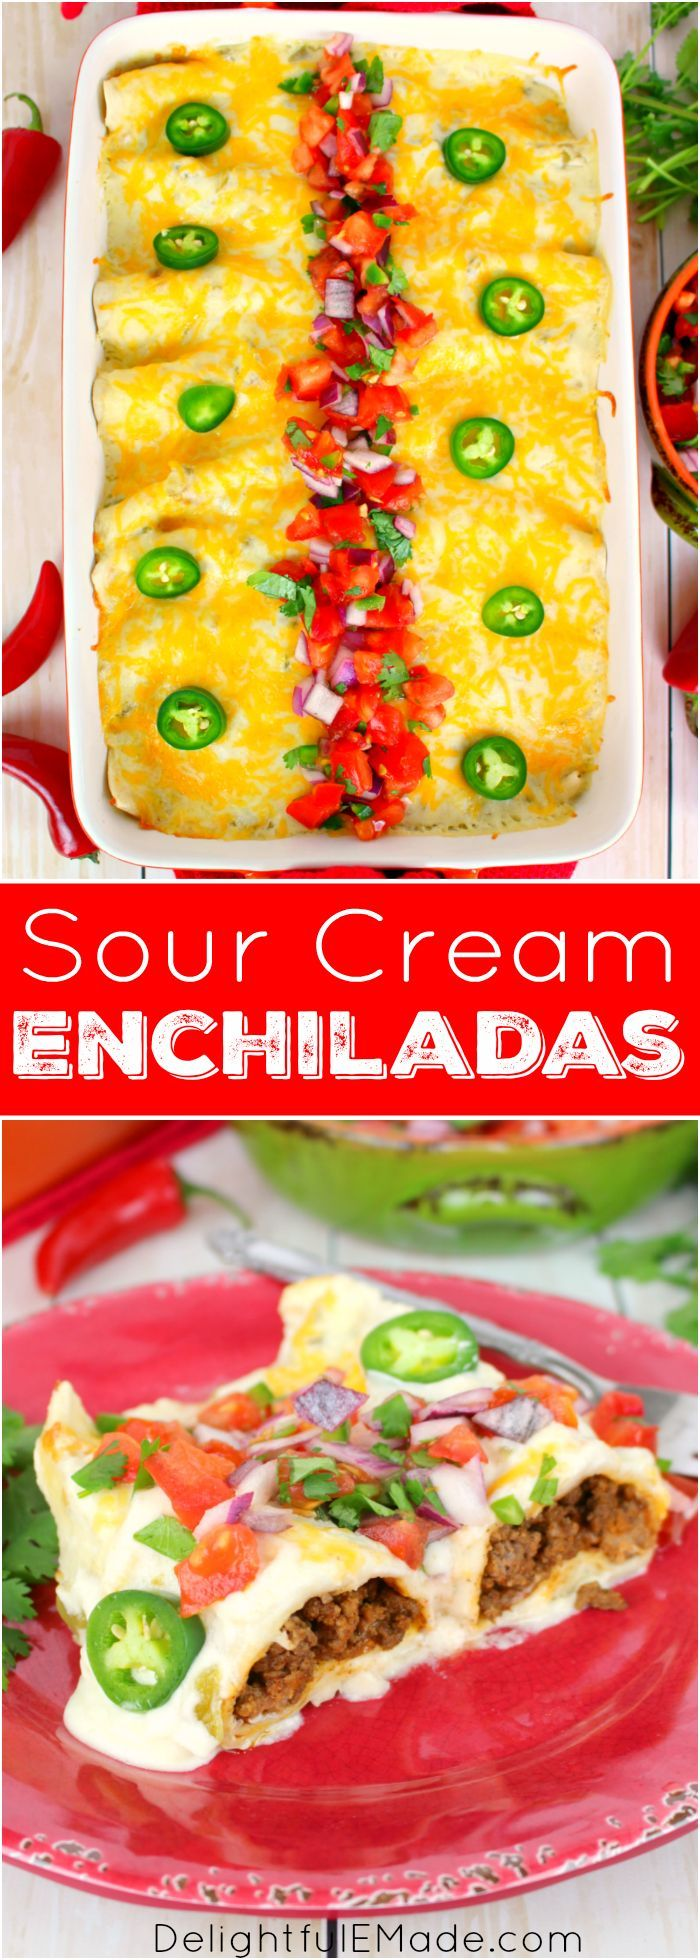 The only enchilada recipe you'll ever need! Stuffed with seasoned ground beef and cheese, smothered with a thick, delicious sour cream sauce, topped with more cheese and baked to perfection, these enchiladas are incredible! Amazing with pico de gallo an